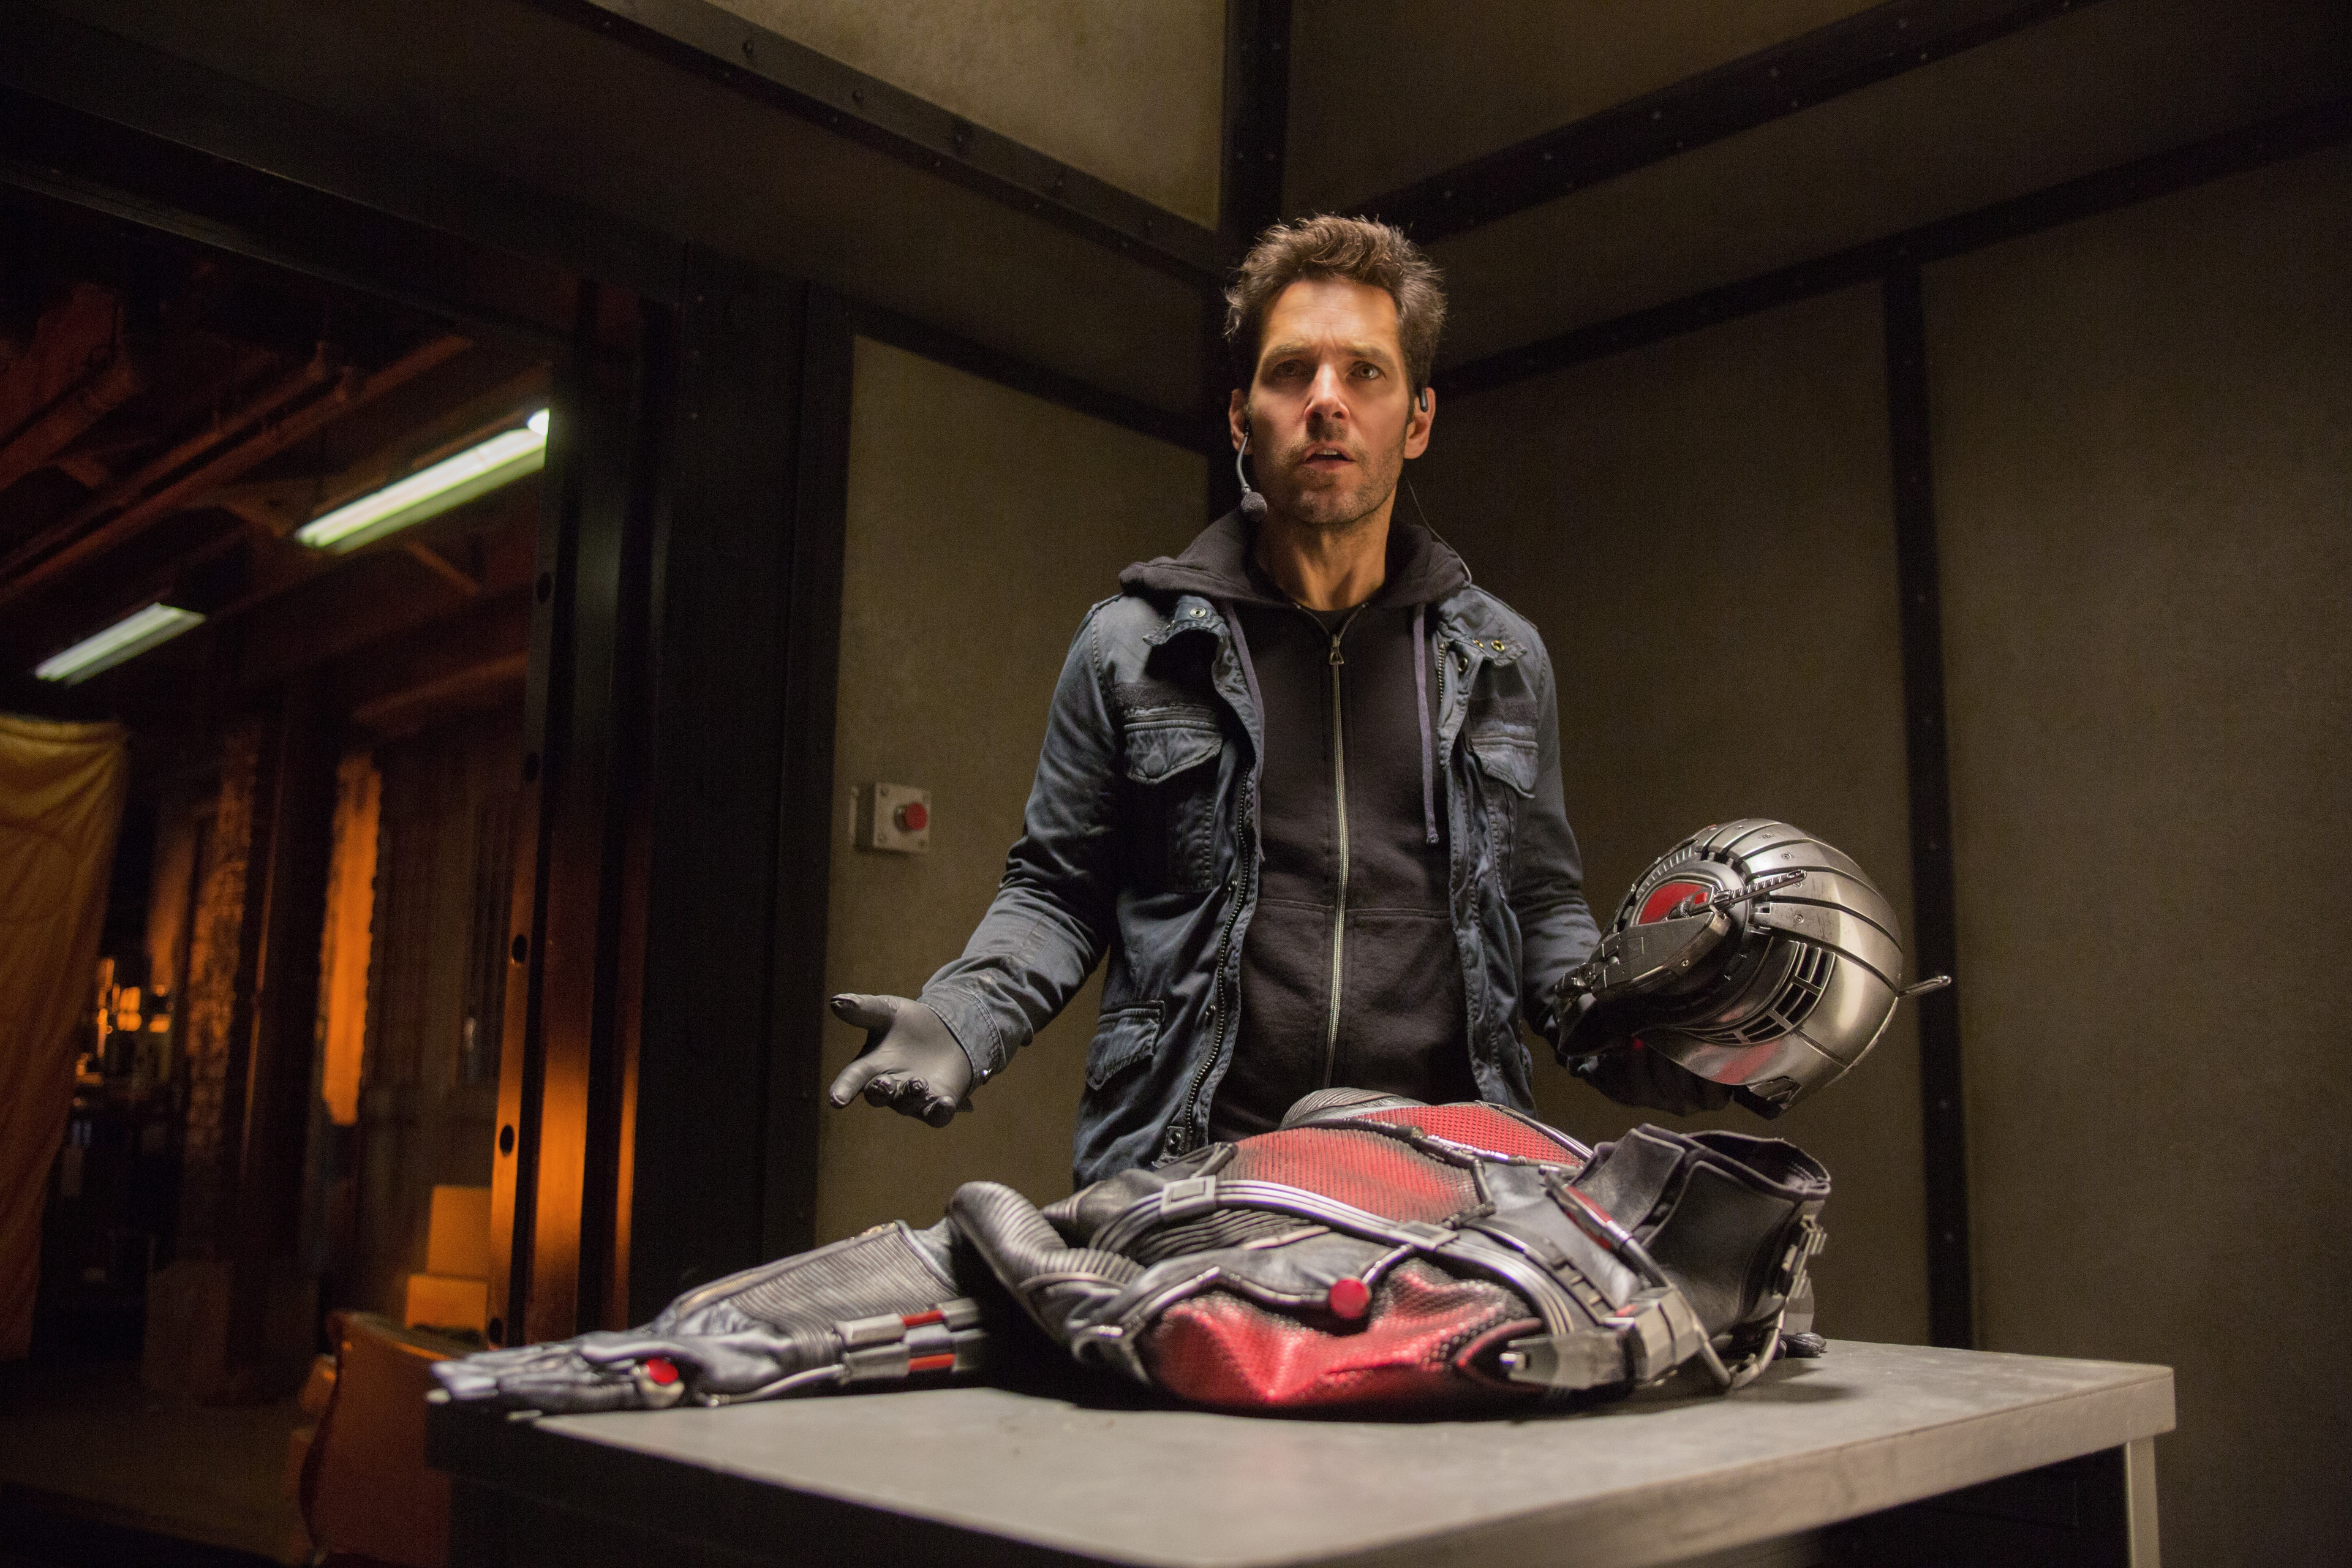 Paul Rudd (as Scott Lang) posing in front of the Ant-Man suit